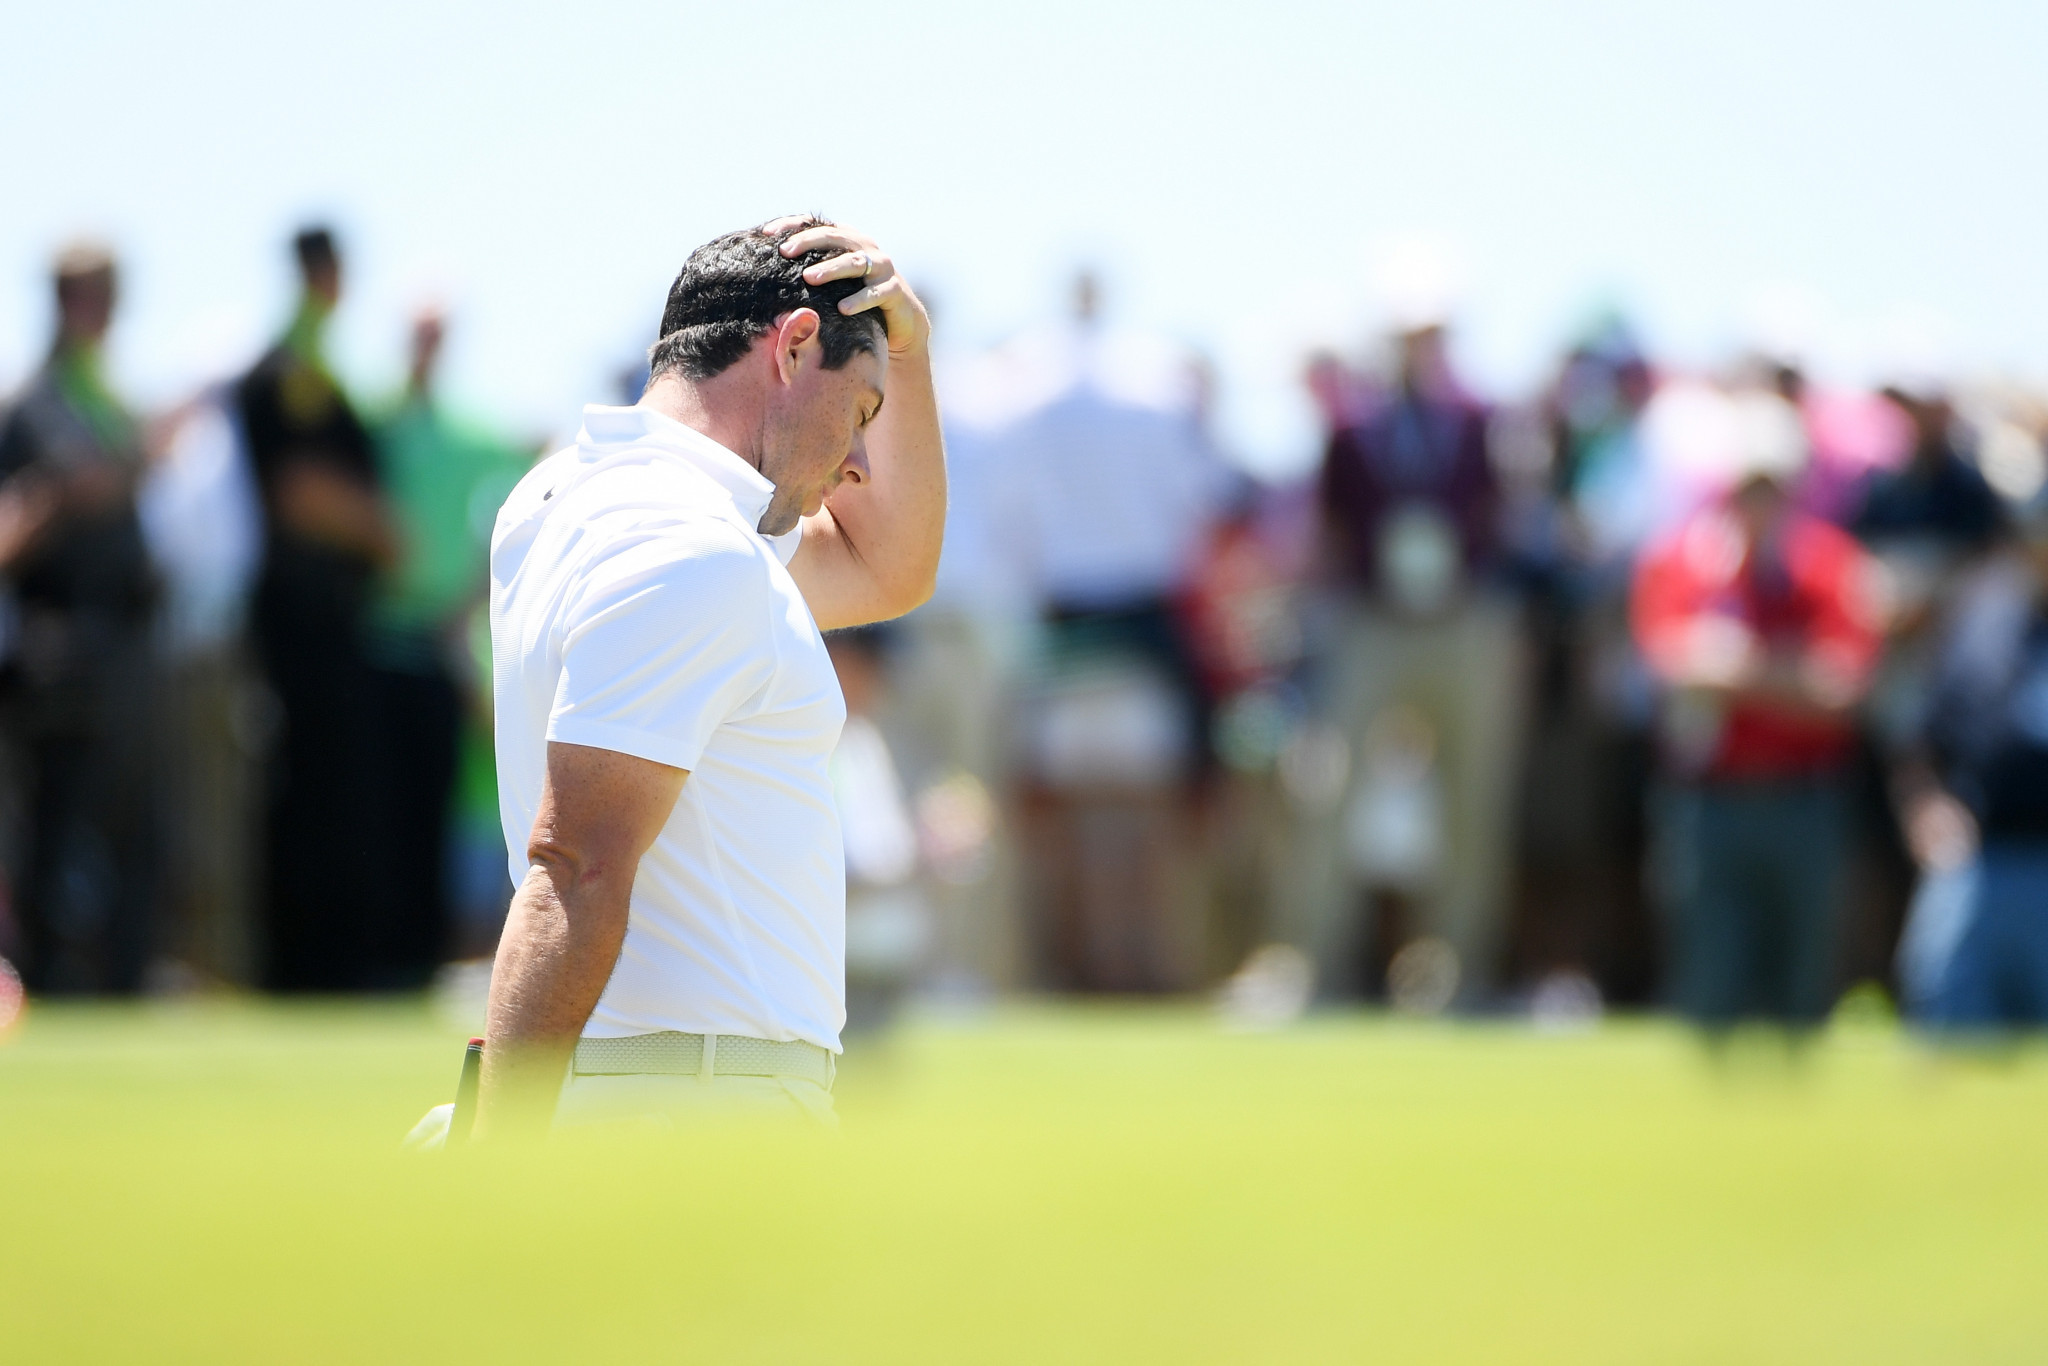 Rory McIlroy endured a difficult opening round to finish 11 shots off the lead ©Getty Images